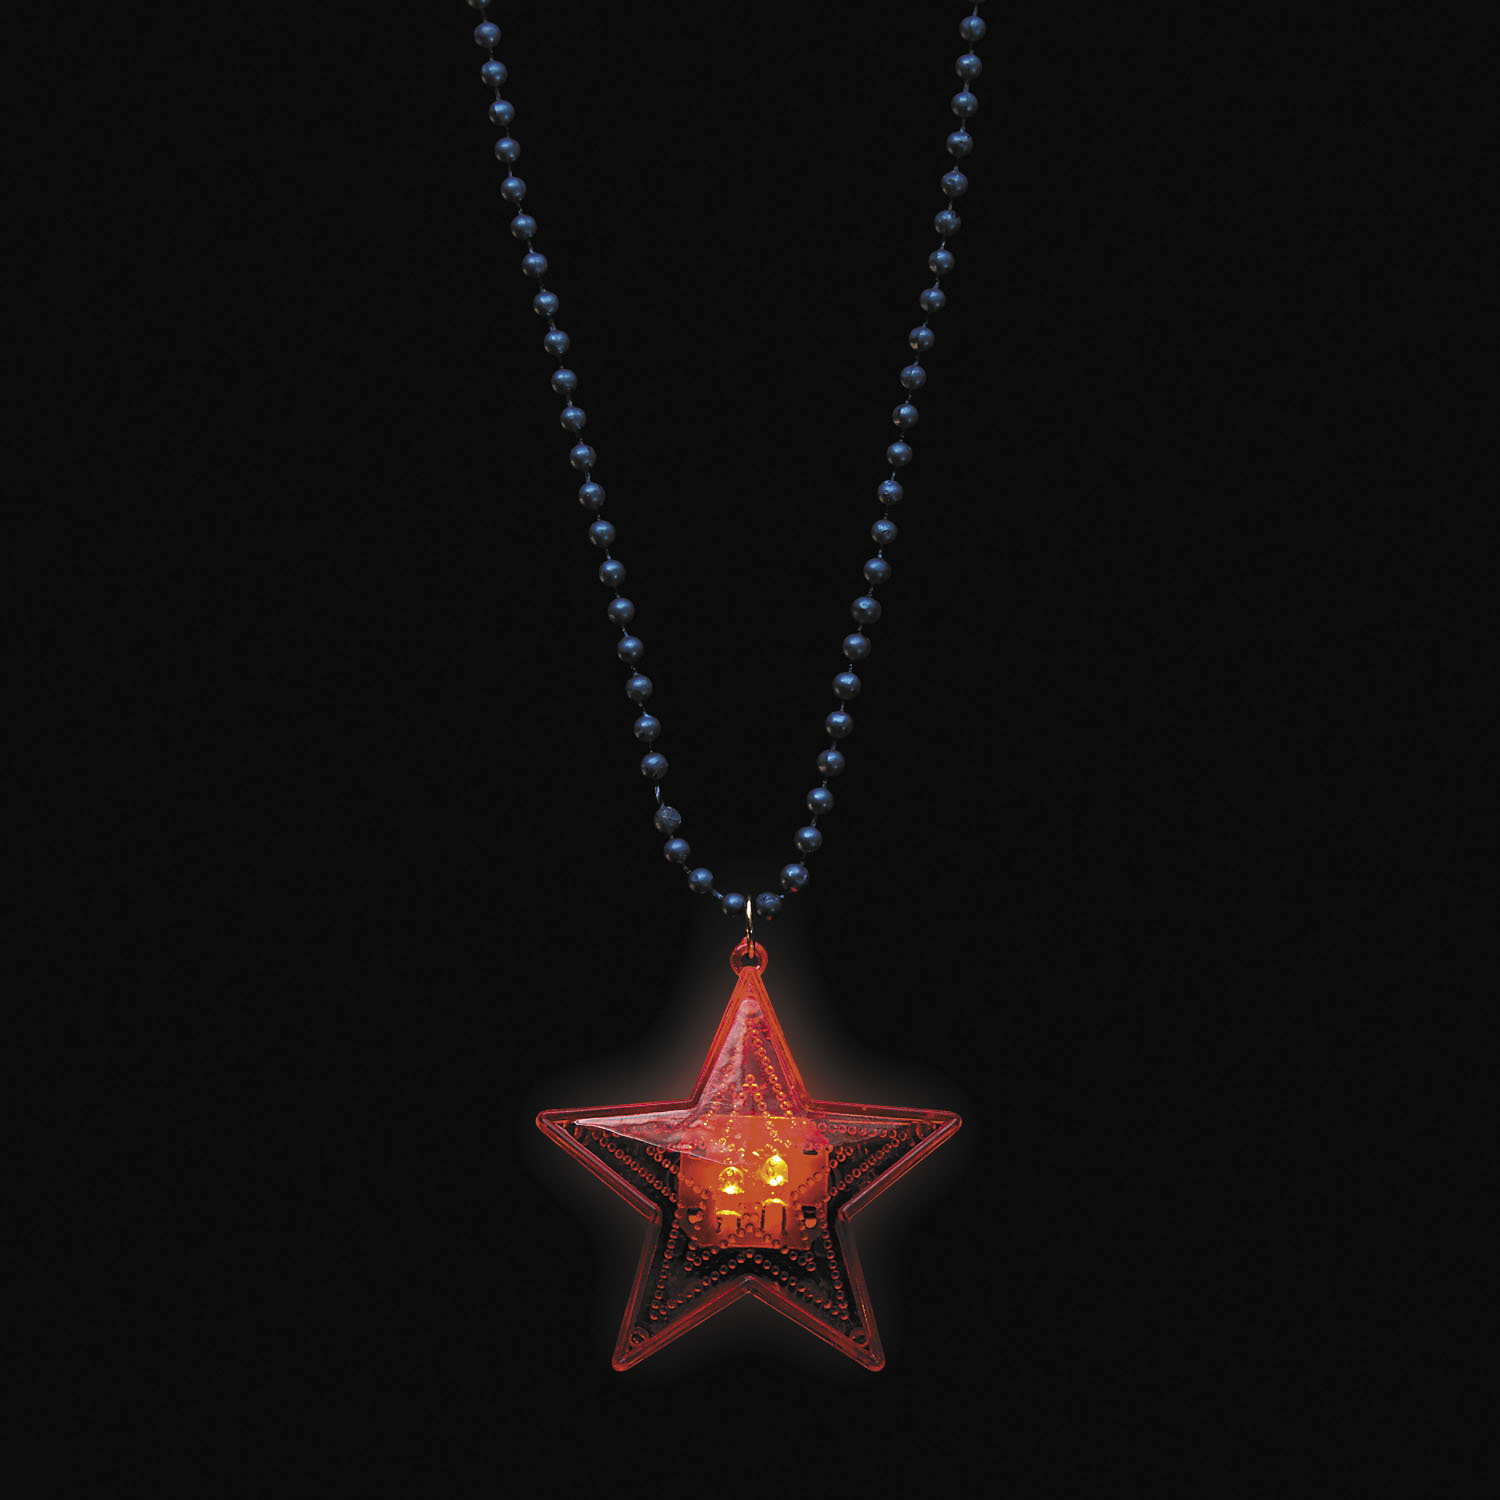 wholesale patriotic star light up necklaces sku 2271844. Black Bedroom Furniture Sets. Home Design Ideas